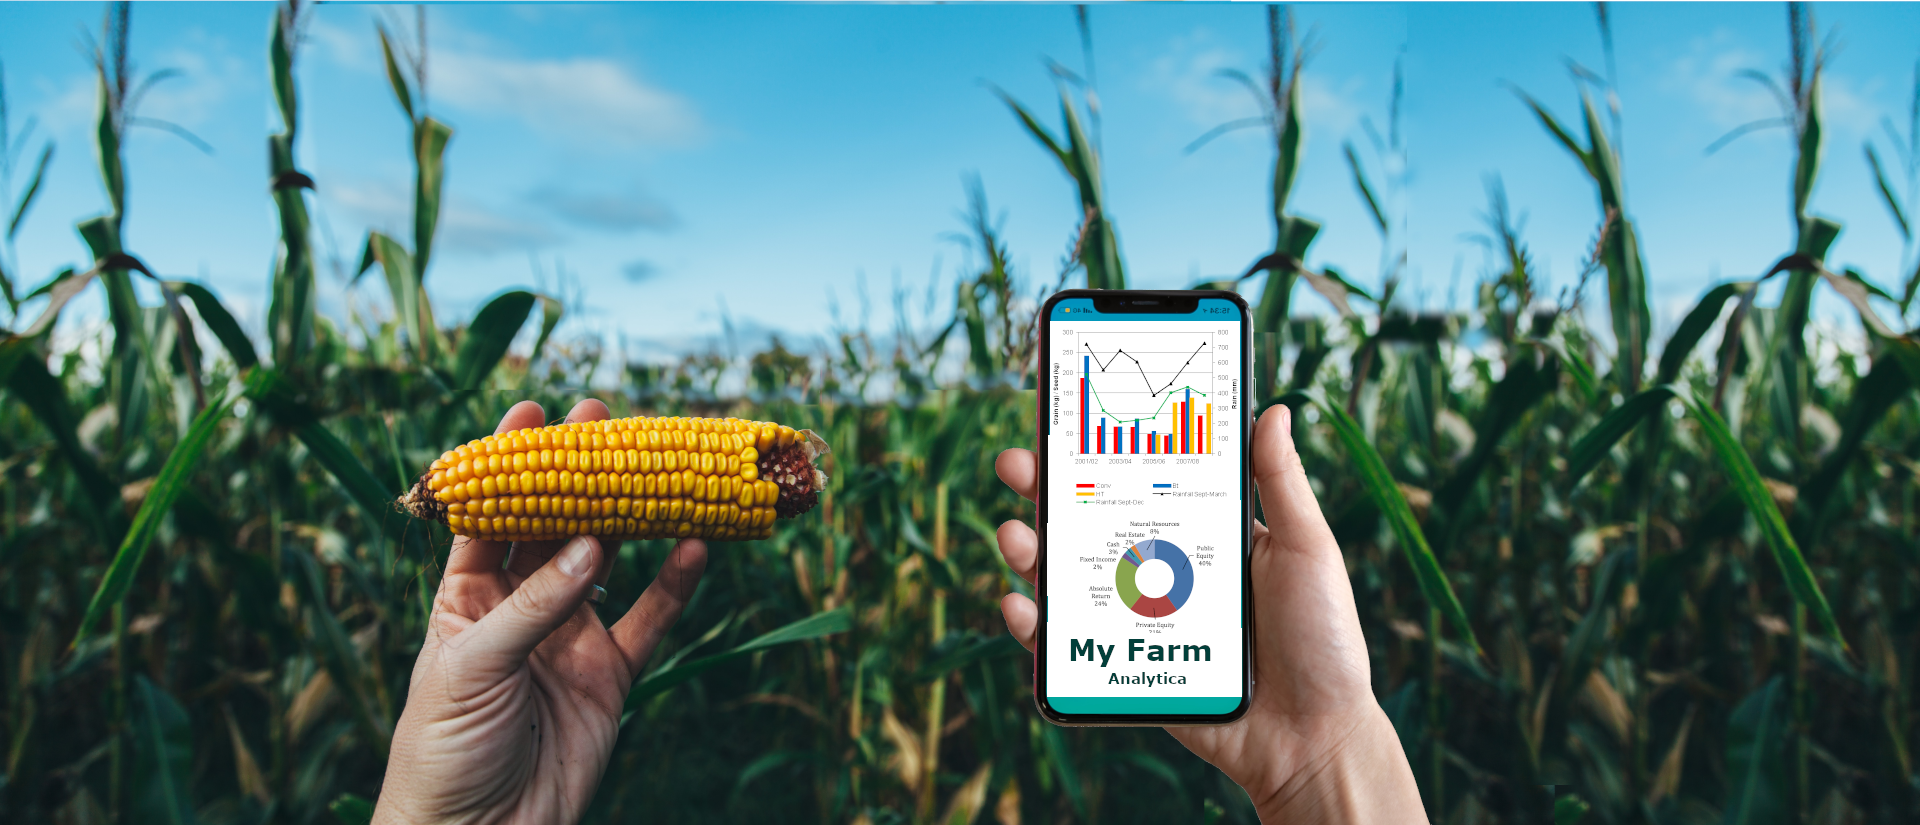 Data Science in Agriculture Image